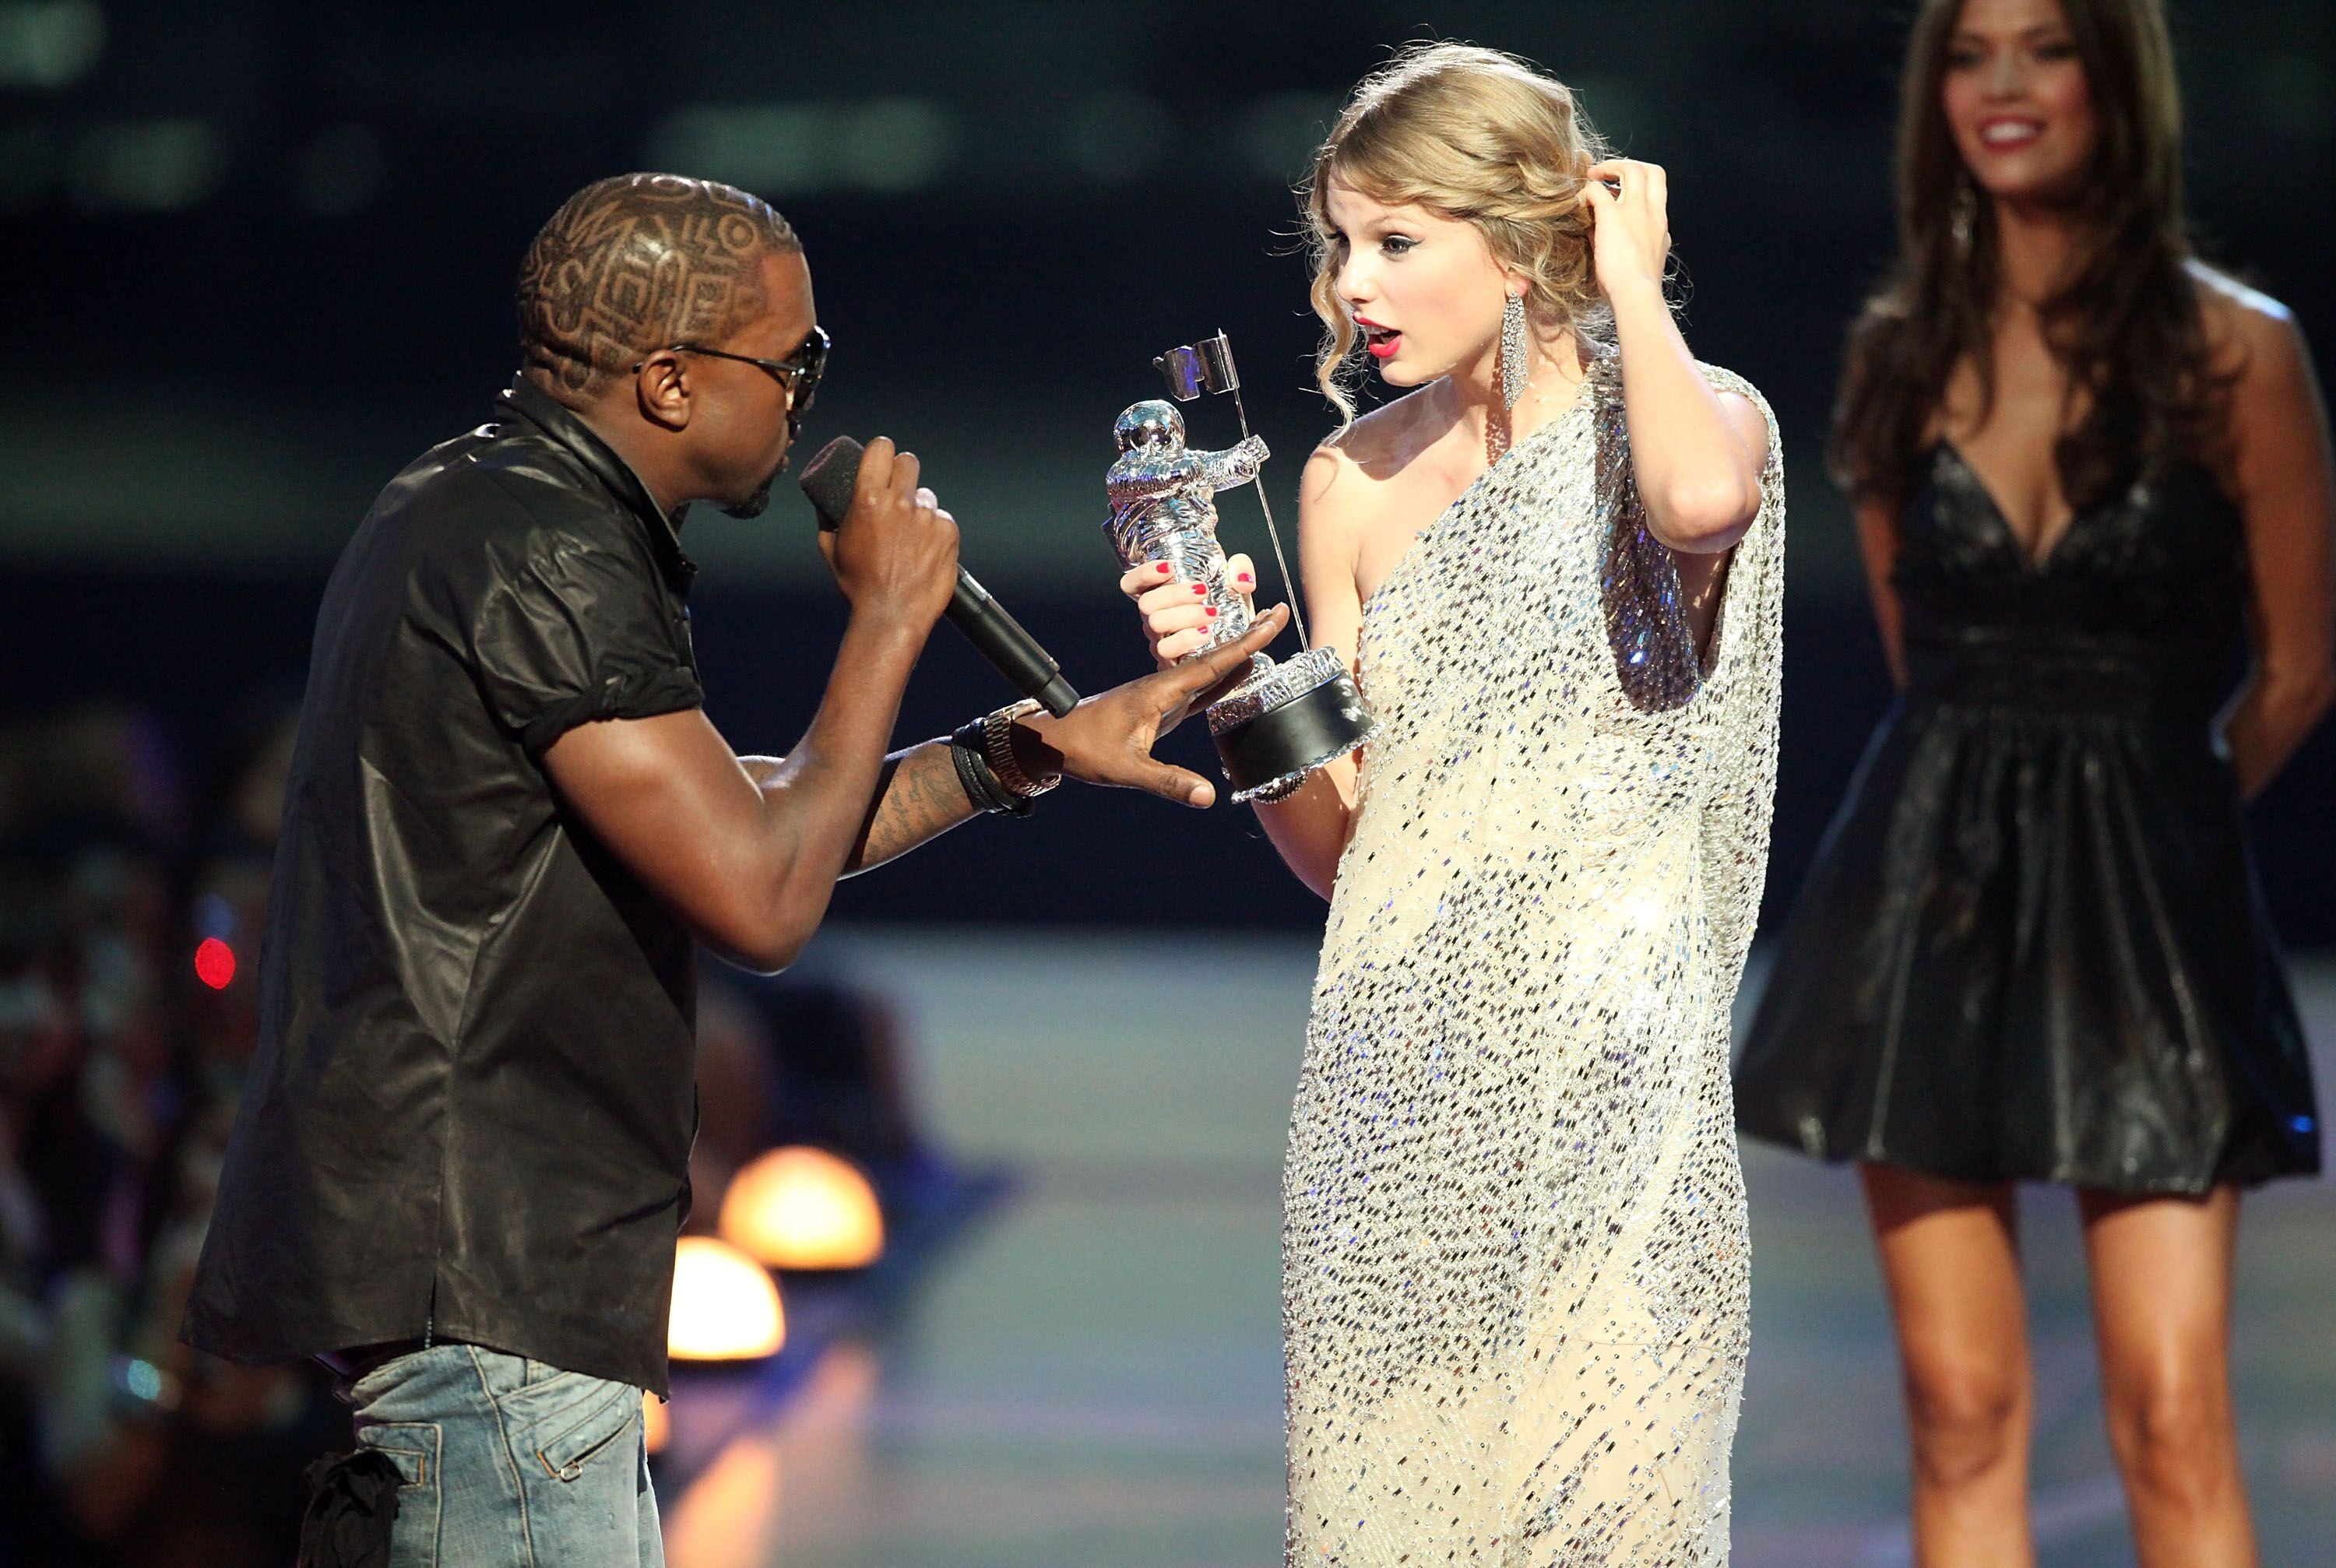 """Kanye West jumps onstage after Taylor Swift won the """"Best Female Video"""" award during the 2009 MTV Video Music Awards at Radio City Music Hall on September 13, 2009, in New York City. 